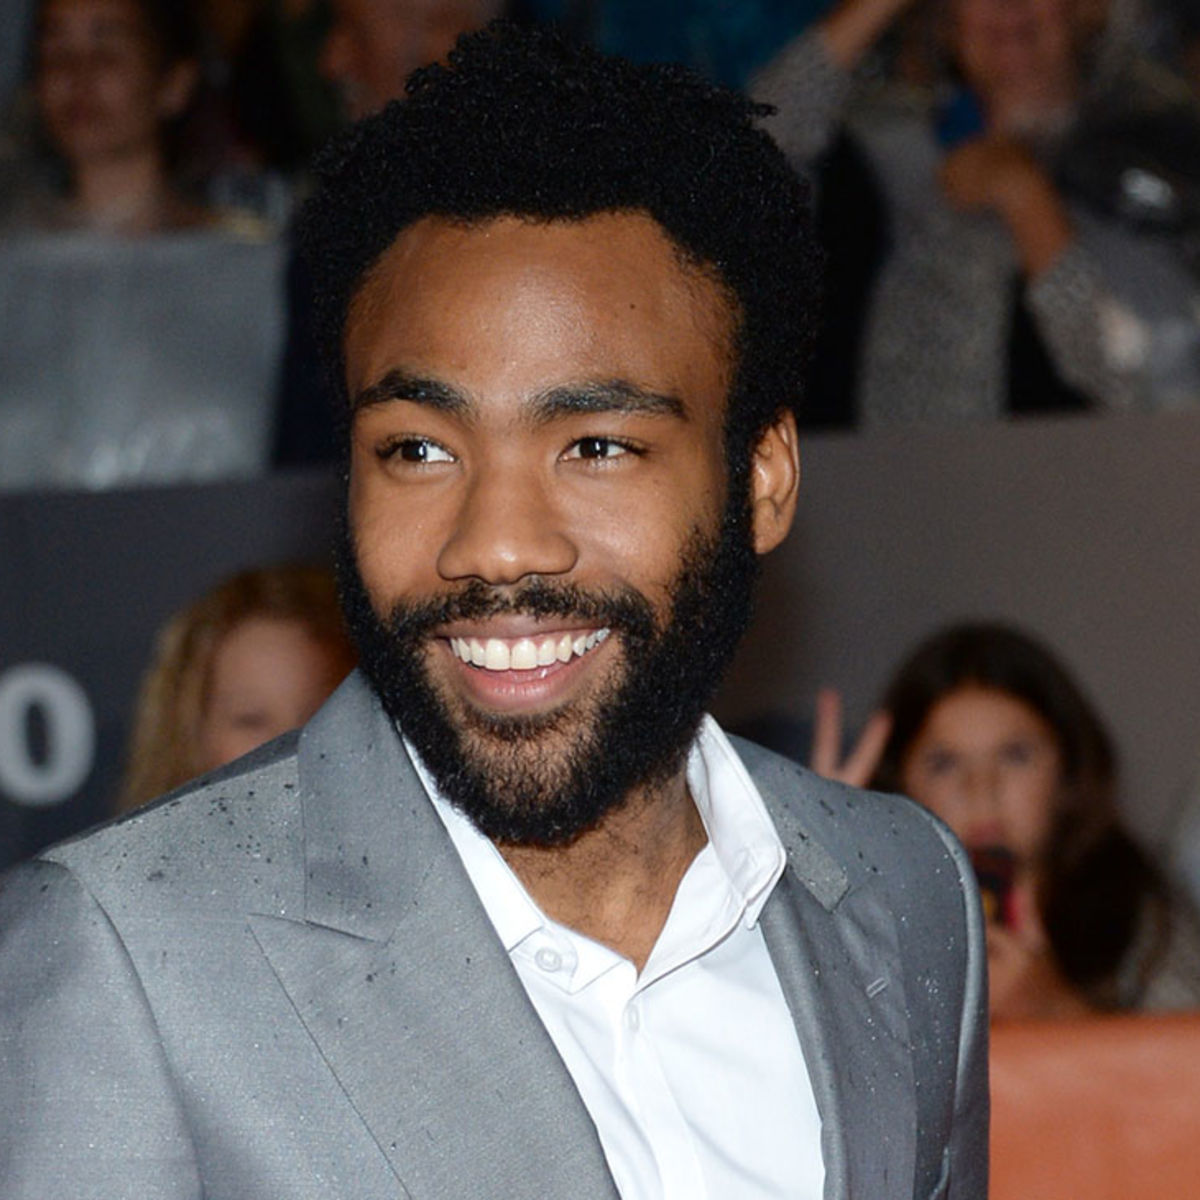 Donald Glover Shows You The Secret To Making A Brown Suit Look Cool Donald Glover Shows You The Secret To Making A Brown Suit Look Cool new picture